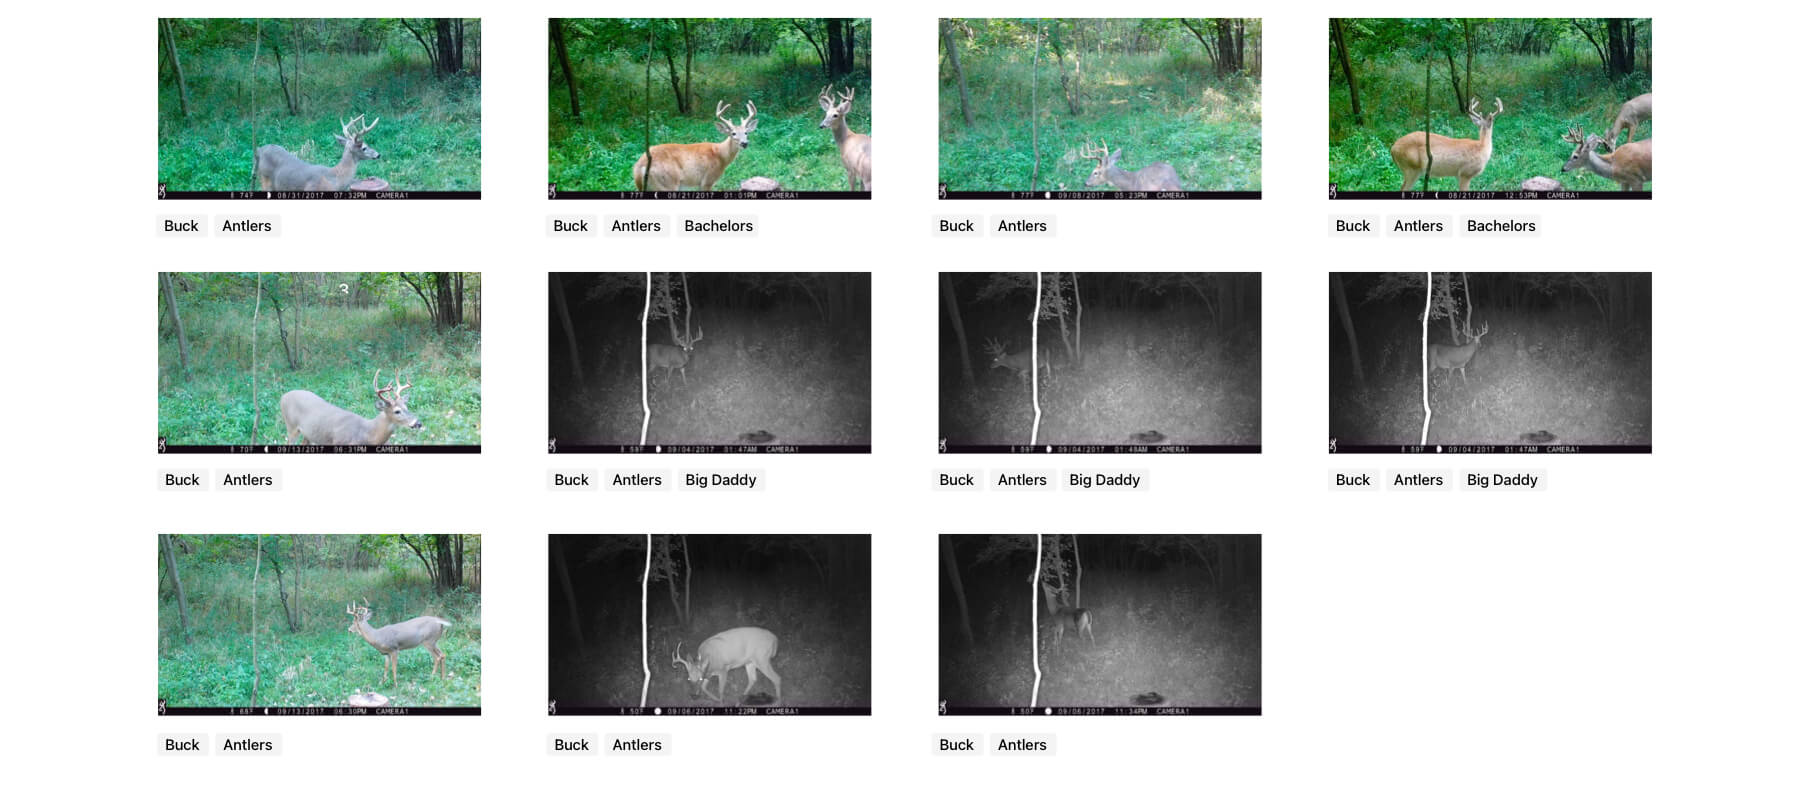 Photos with tags in DeerLab's trail camera software